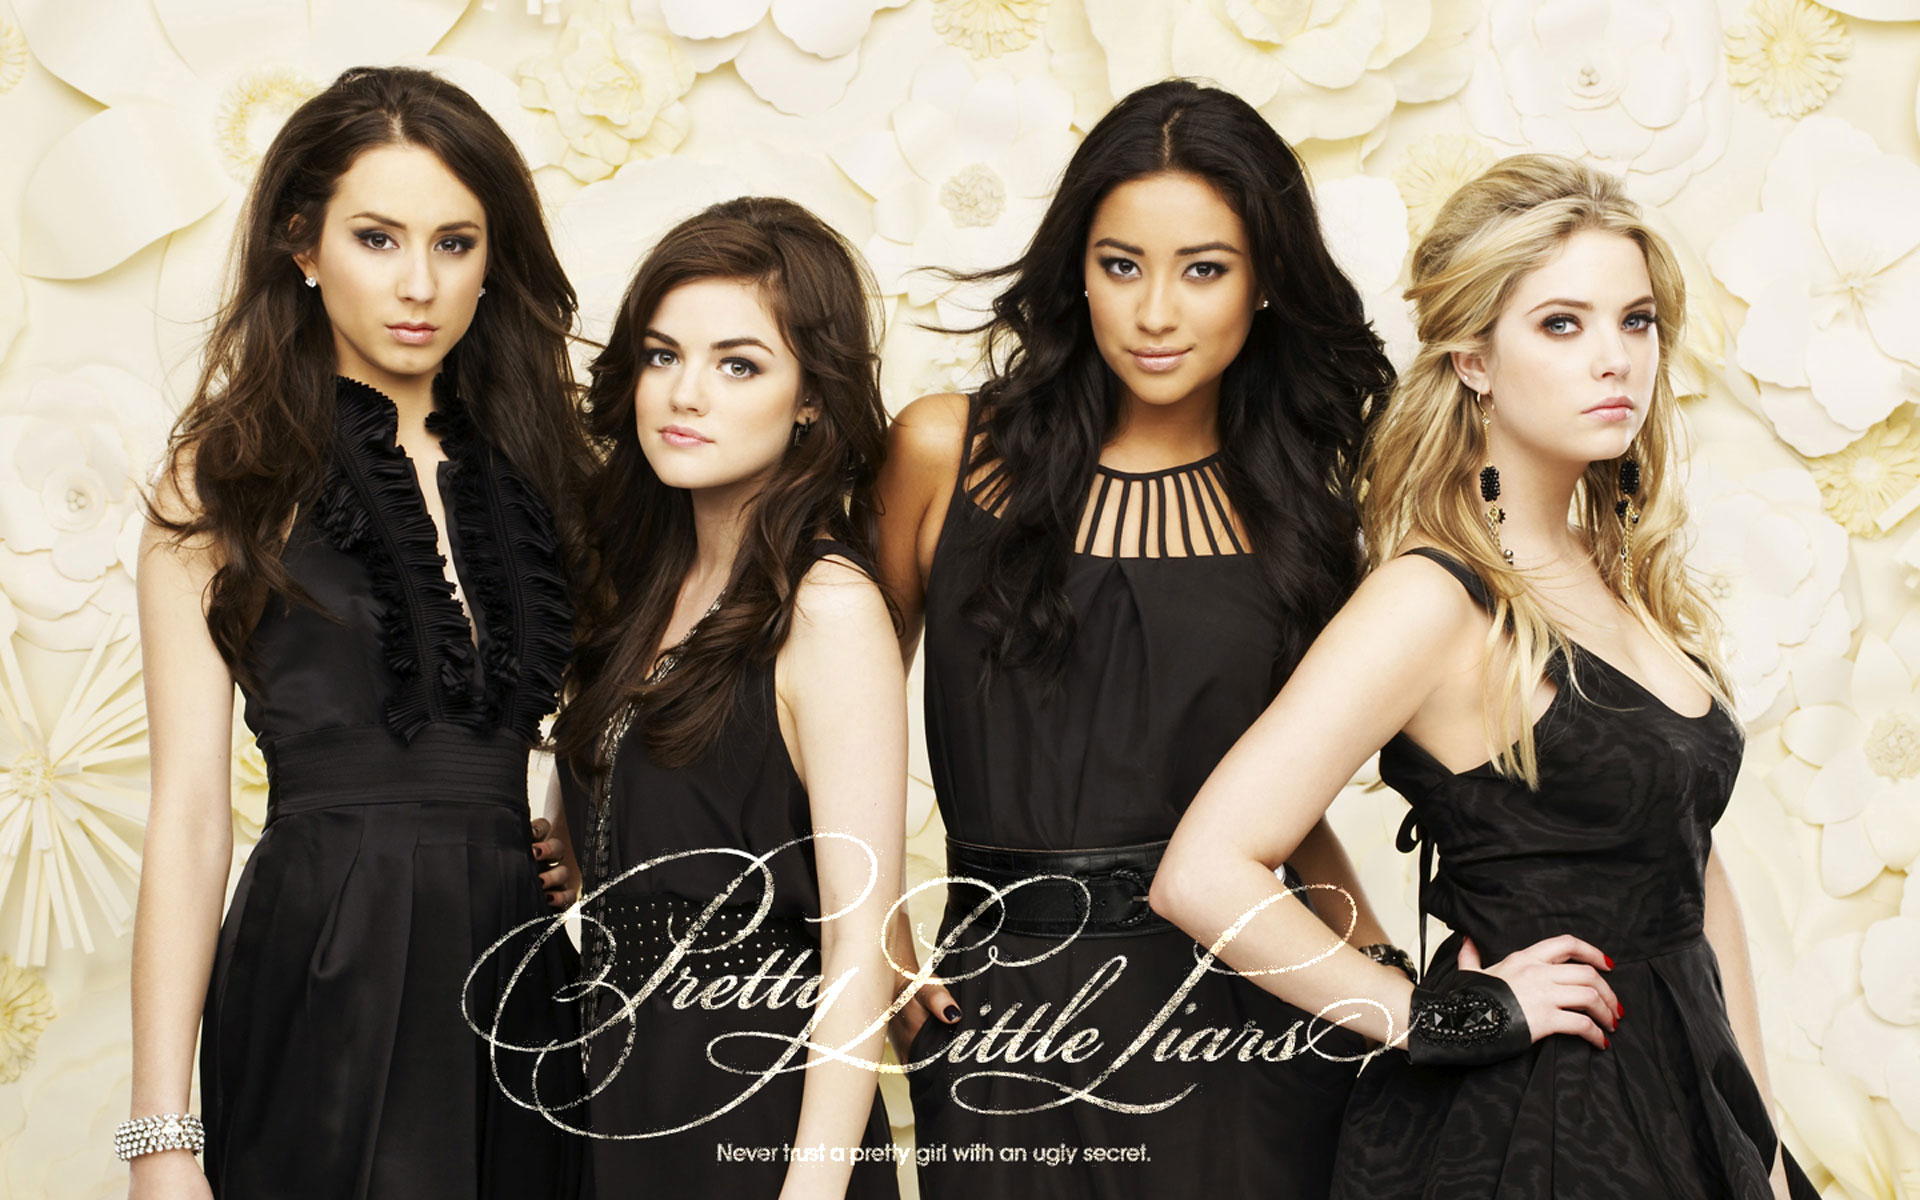 Download Pretty Little Liars HD Wallpapers absolutely free for your pc desktop, laptop and mobile devices.